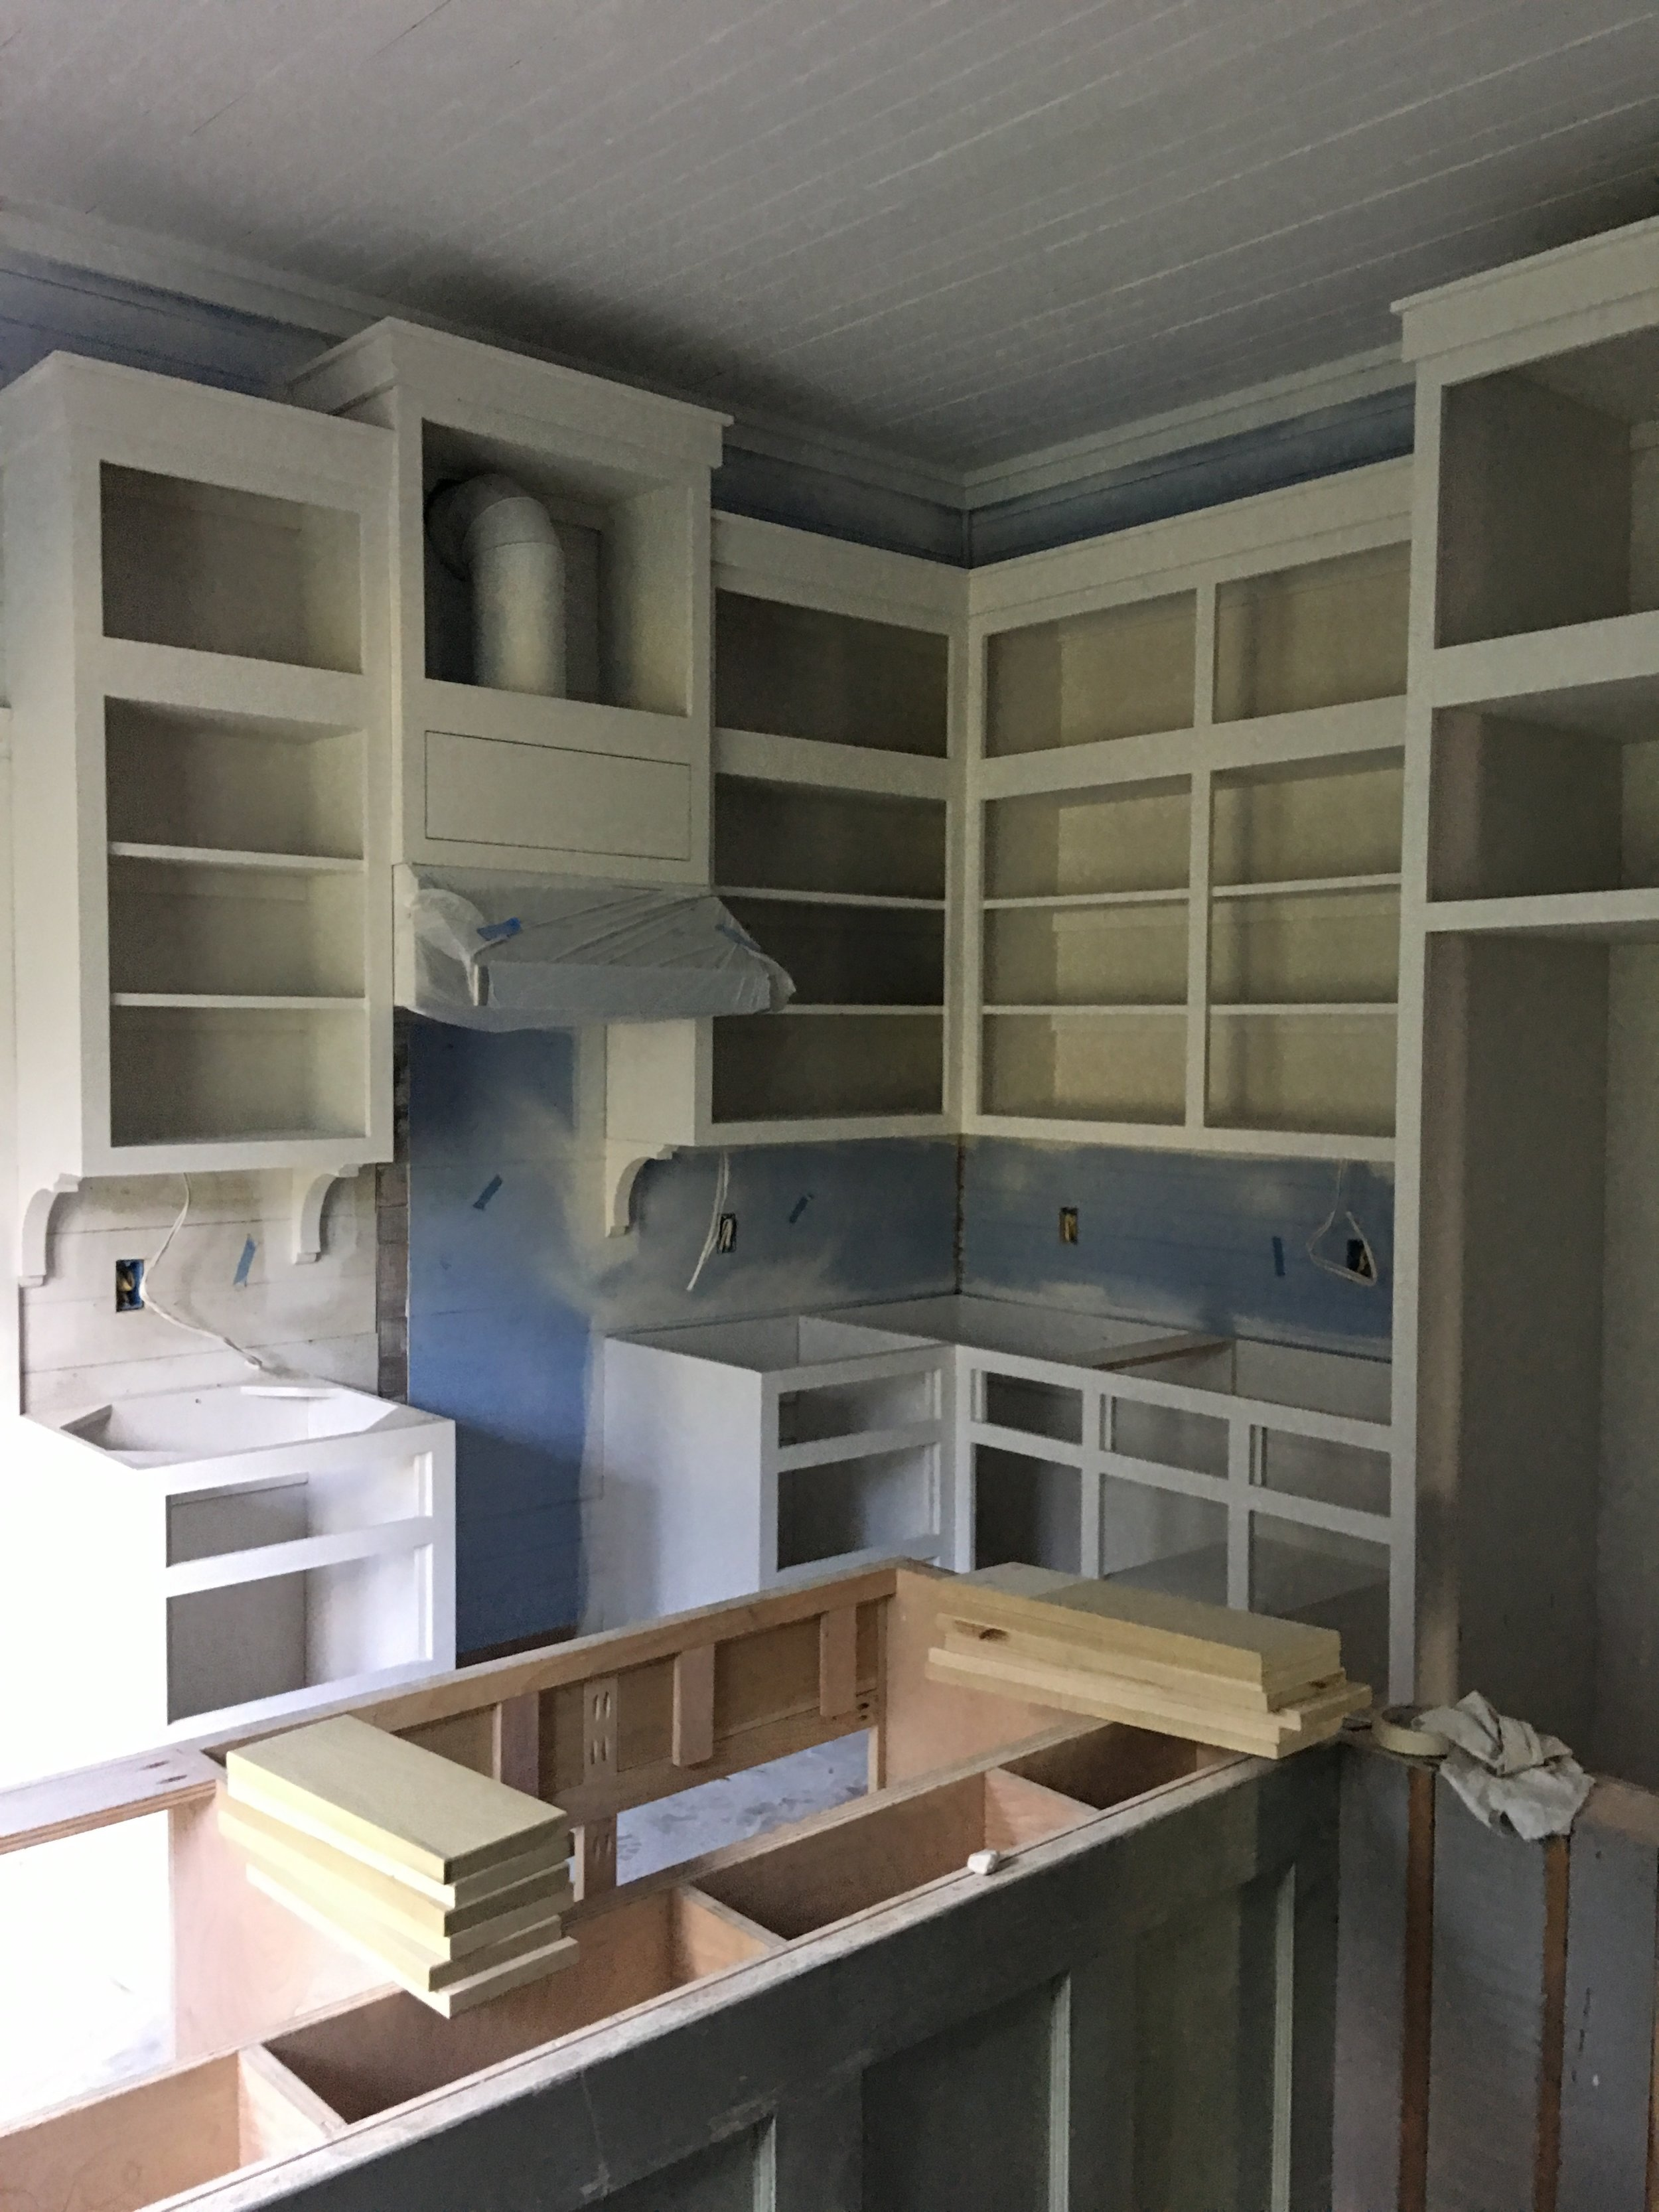 Shealy stove cabinets island IN Progess Painting.jpg